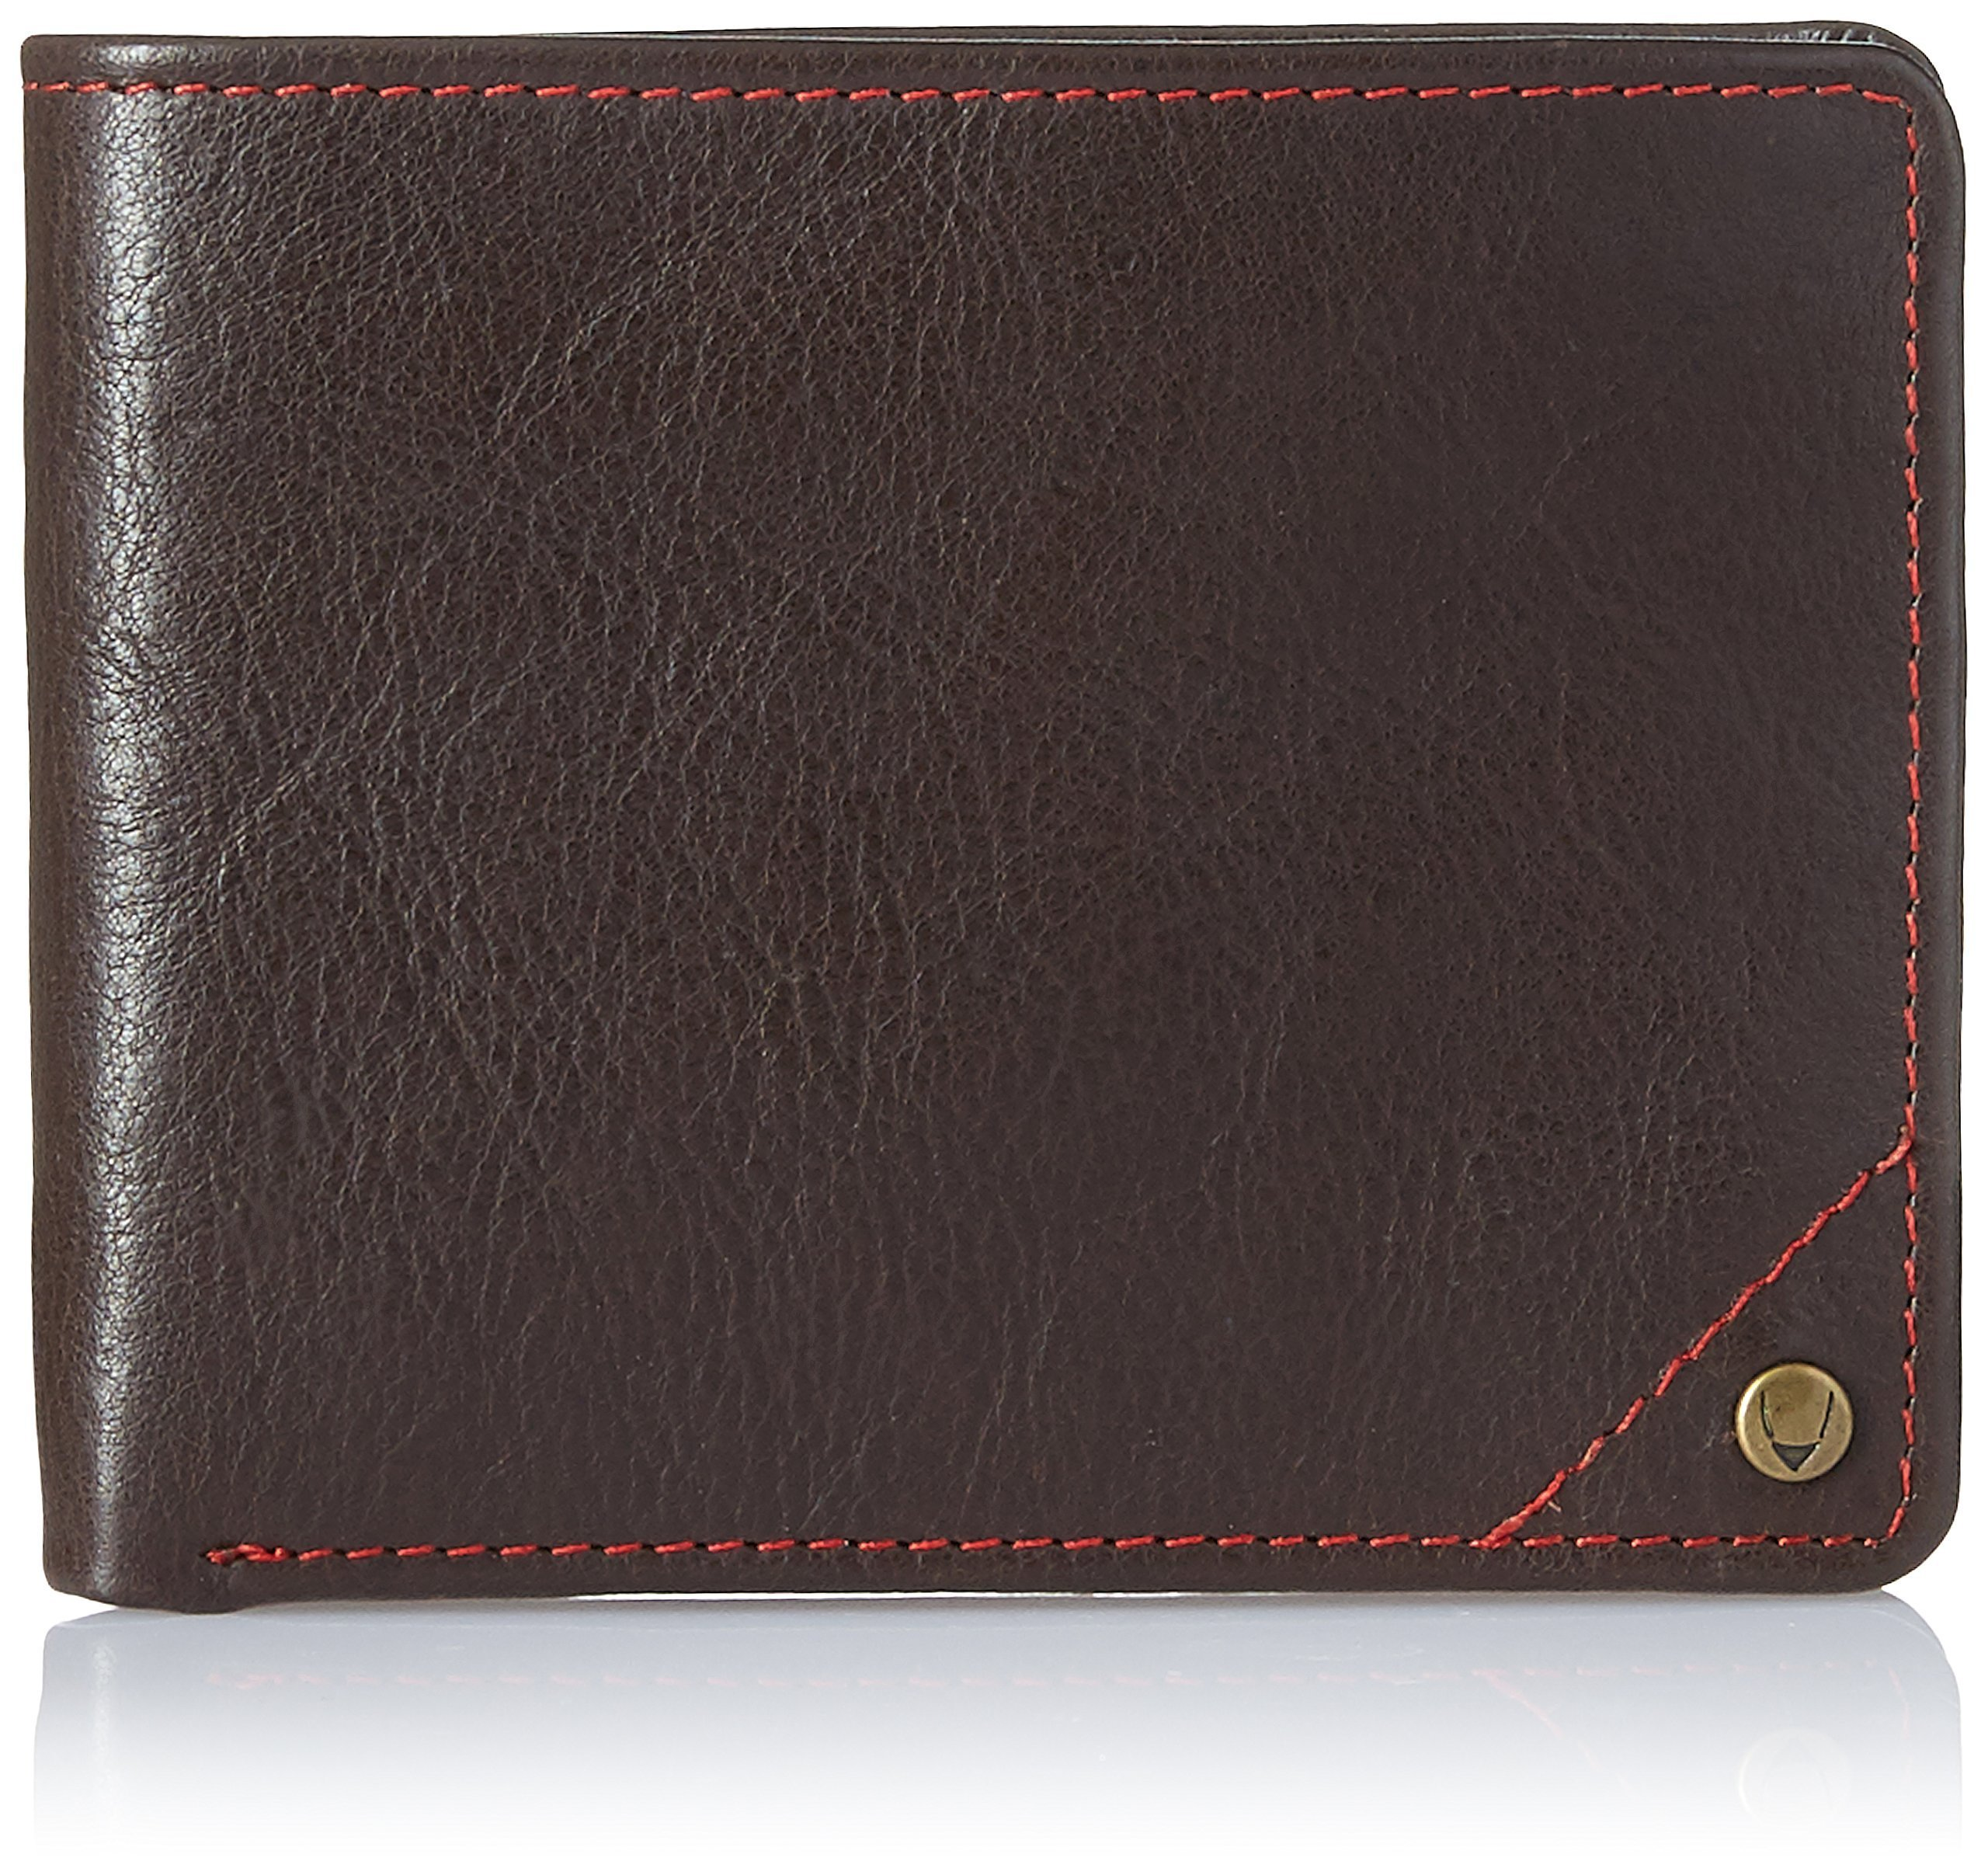 HIDESIGN Angle Stitch Leather Slim Bifold Wallet, Brown